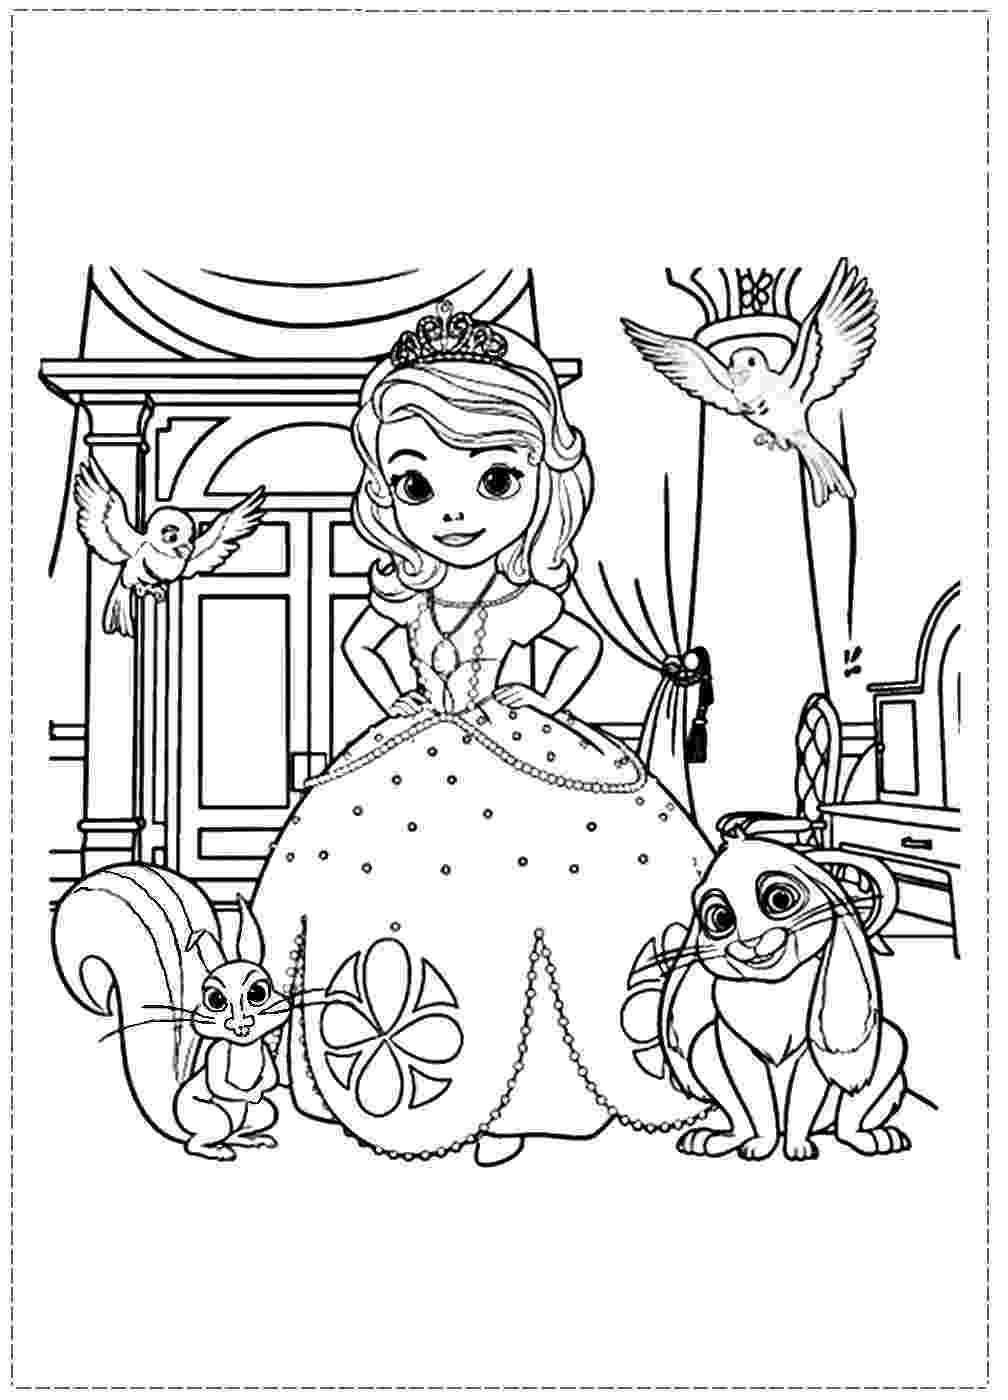 sophie the first coloring pages sofia the first coloring pages free printable sofia the first coloring the sophie pages